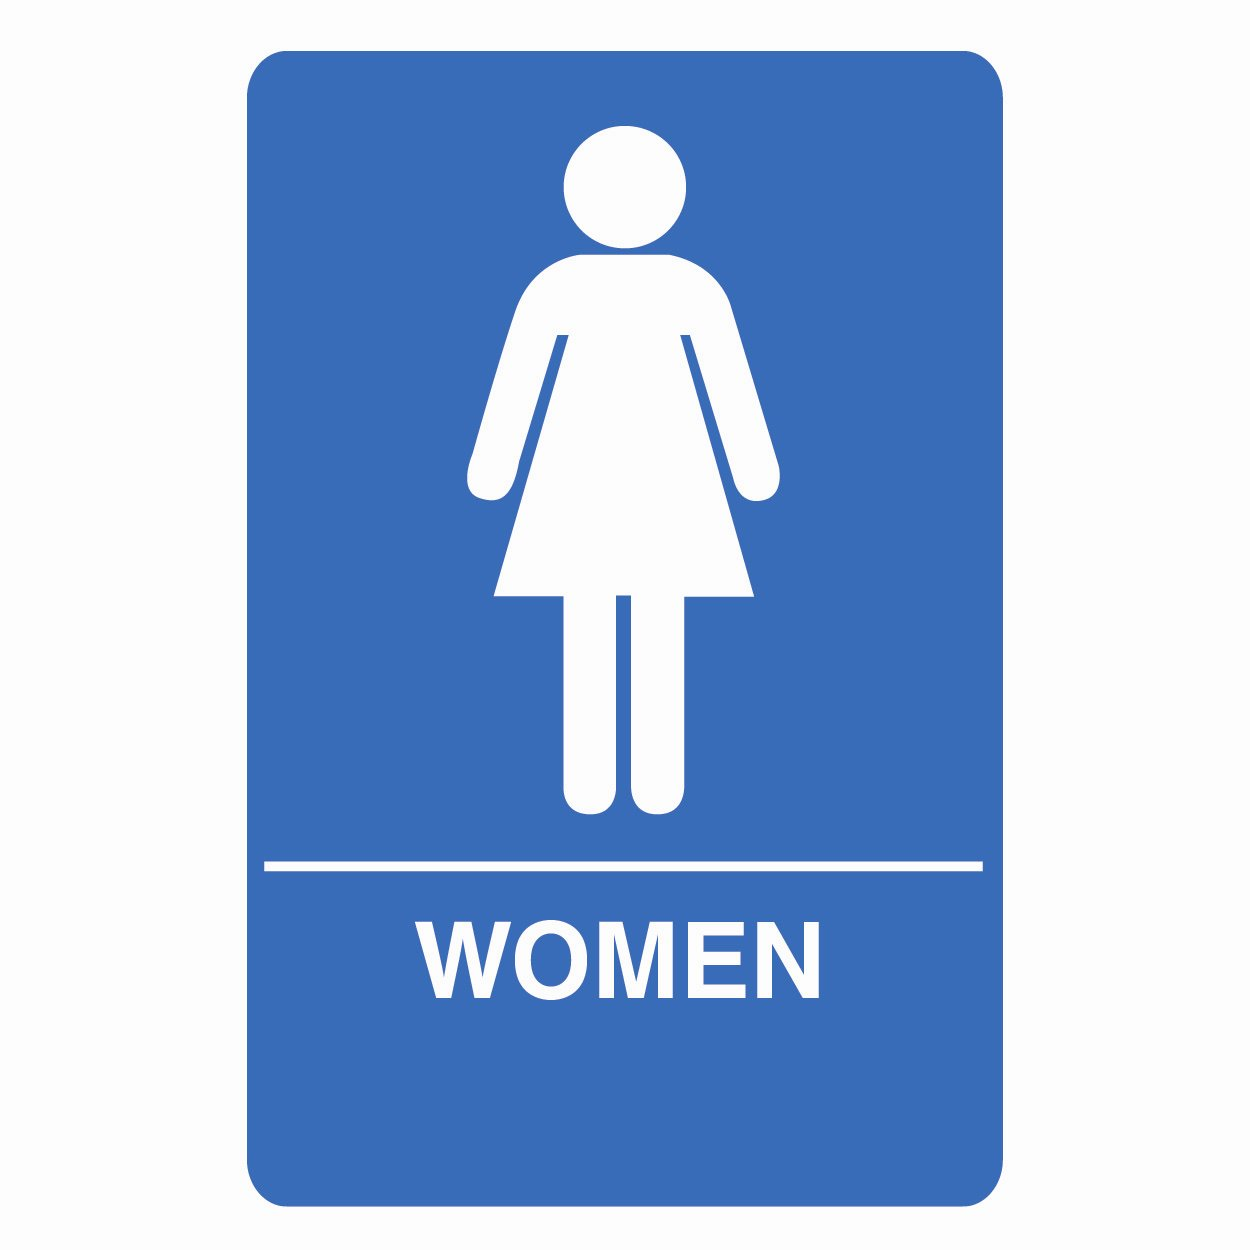 WoMENS RESTROOM SIGN.